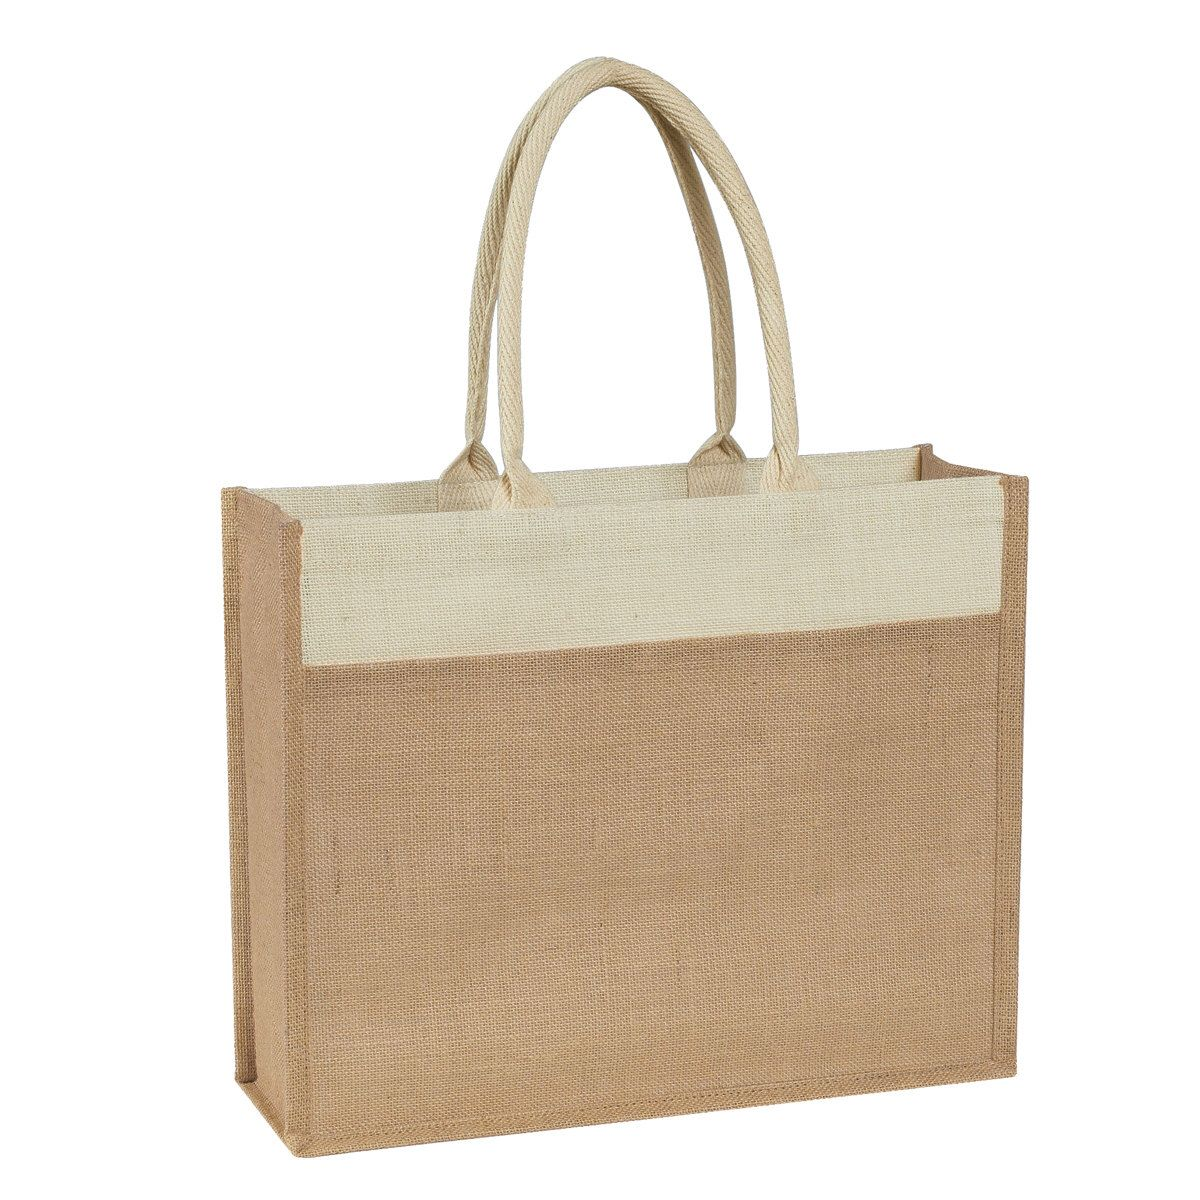 100 Natural Jute Tote Bags, Pure Natural Jute Bags, Wholesale Bags ...